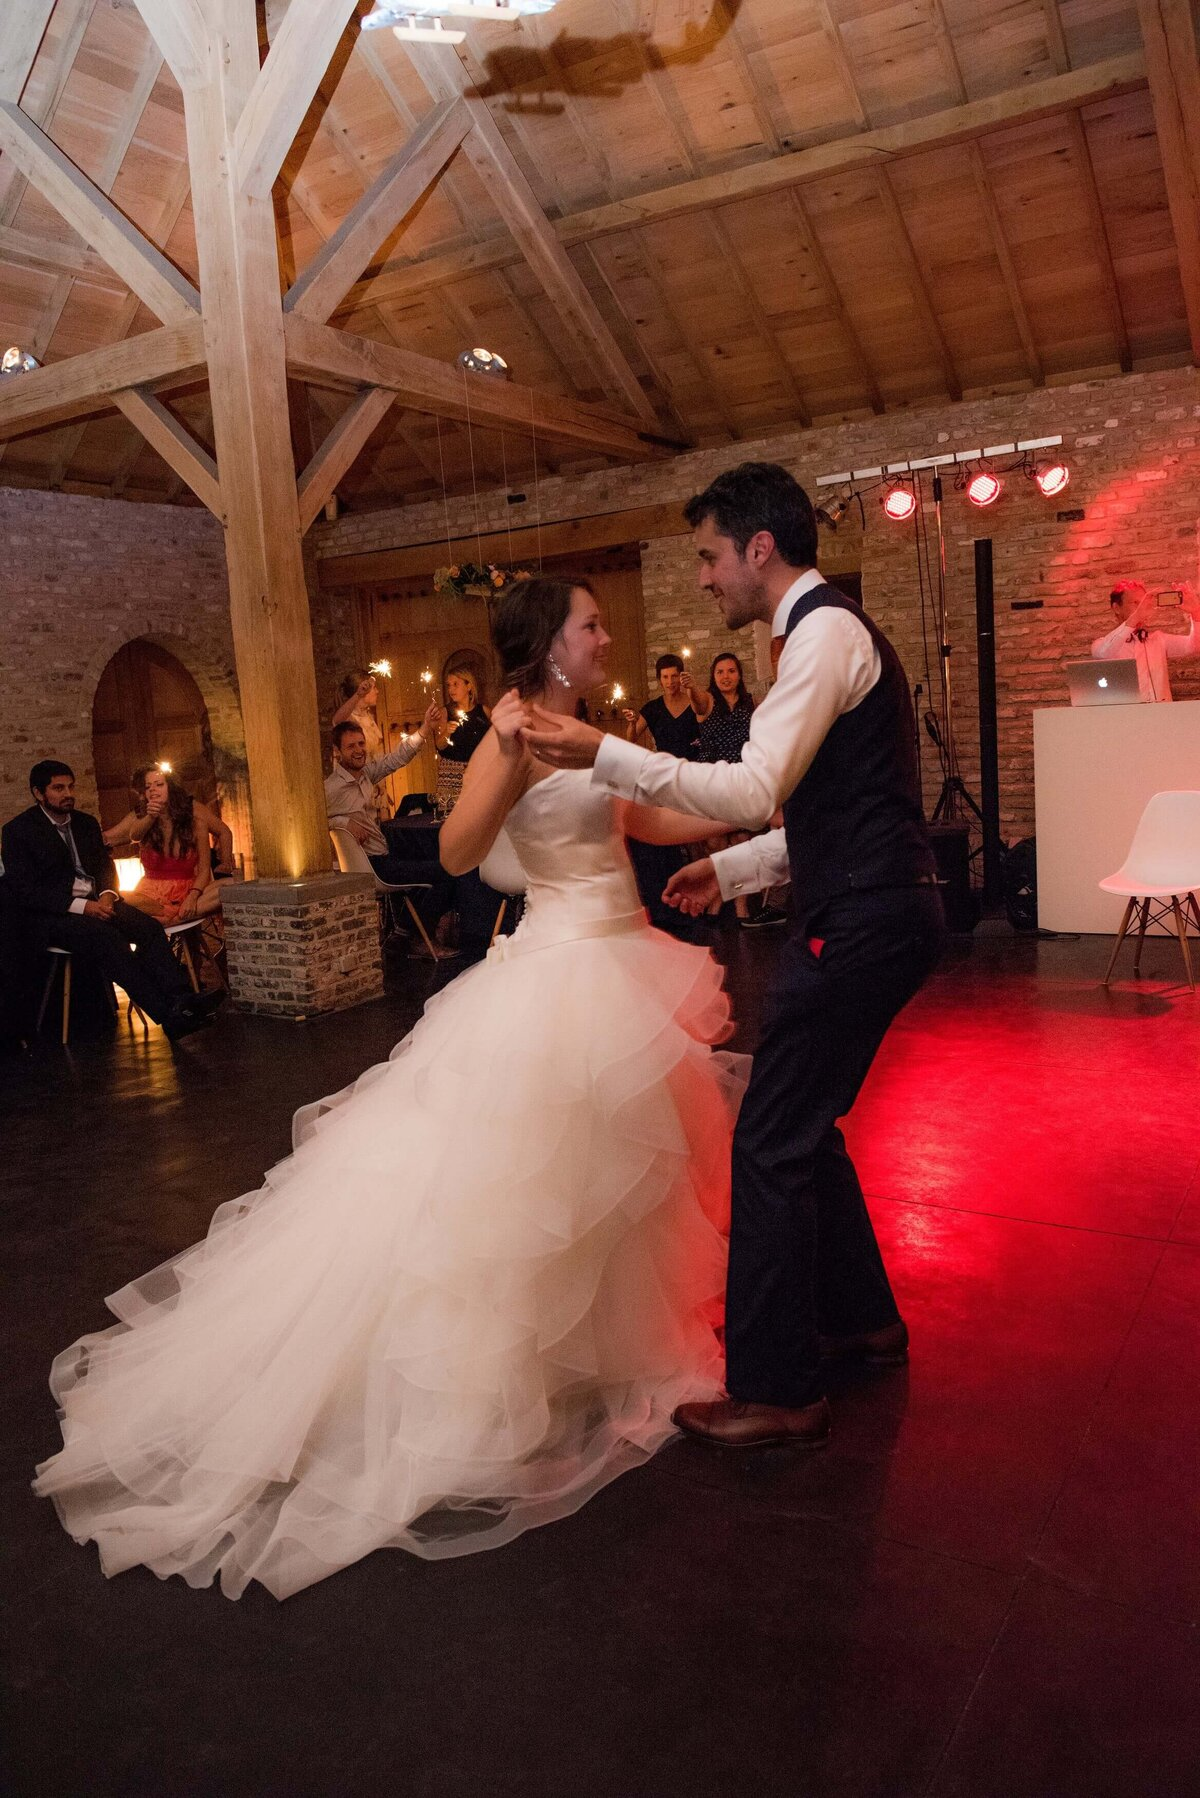 Wedding A&A - International - Barn - Belgium 2015 030